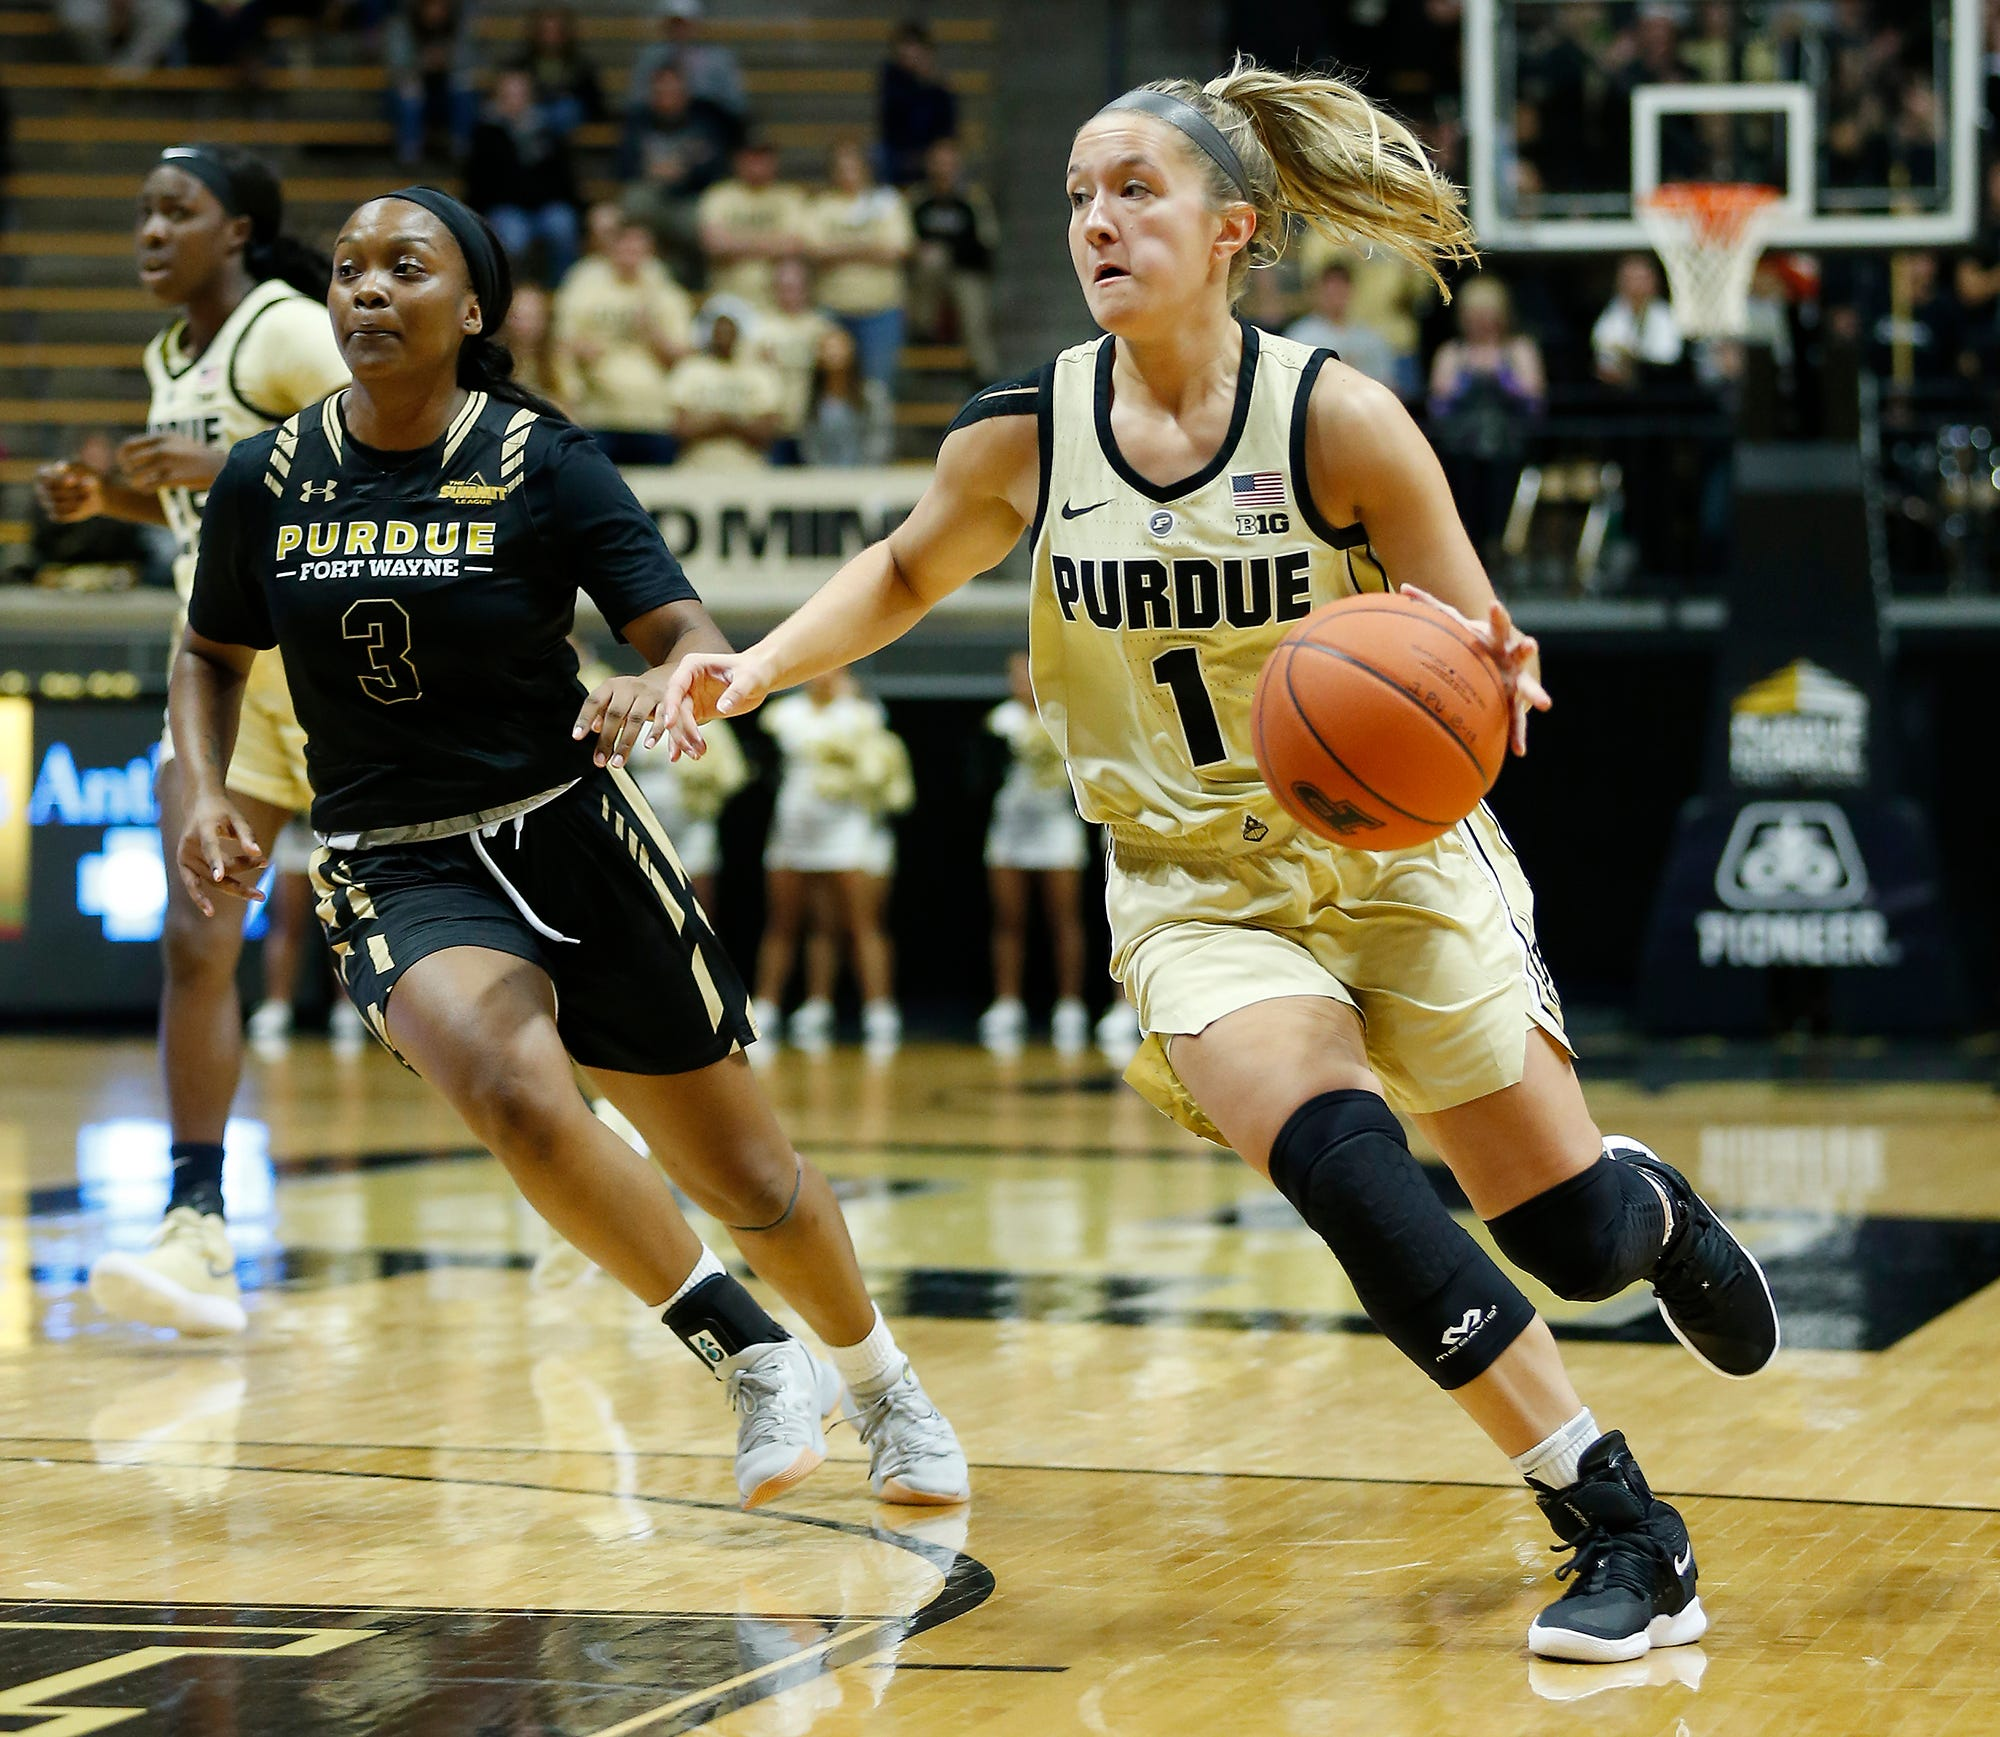 Karissa McLaughlin of Purdue leads a fast break in the second half against Purdue Ft. Wayne Sunday, November 18, 2018, at Mackey Arena. The Boilermakers defeated the Mastadons 78-44.